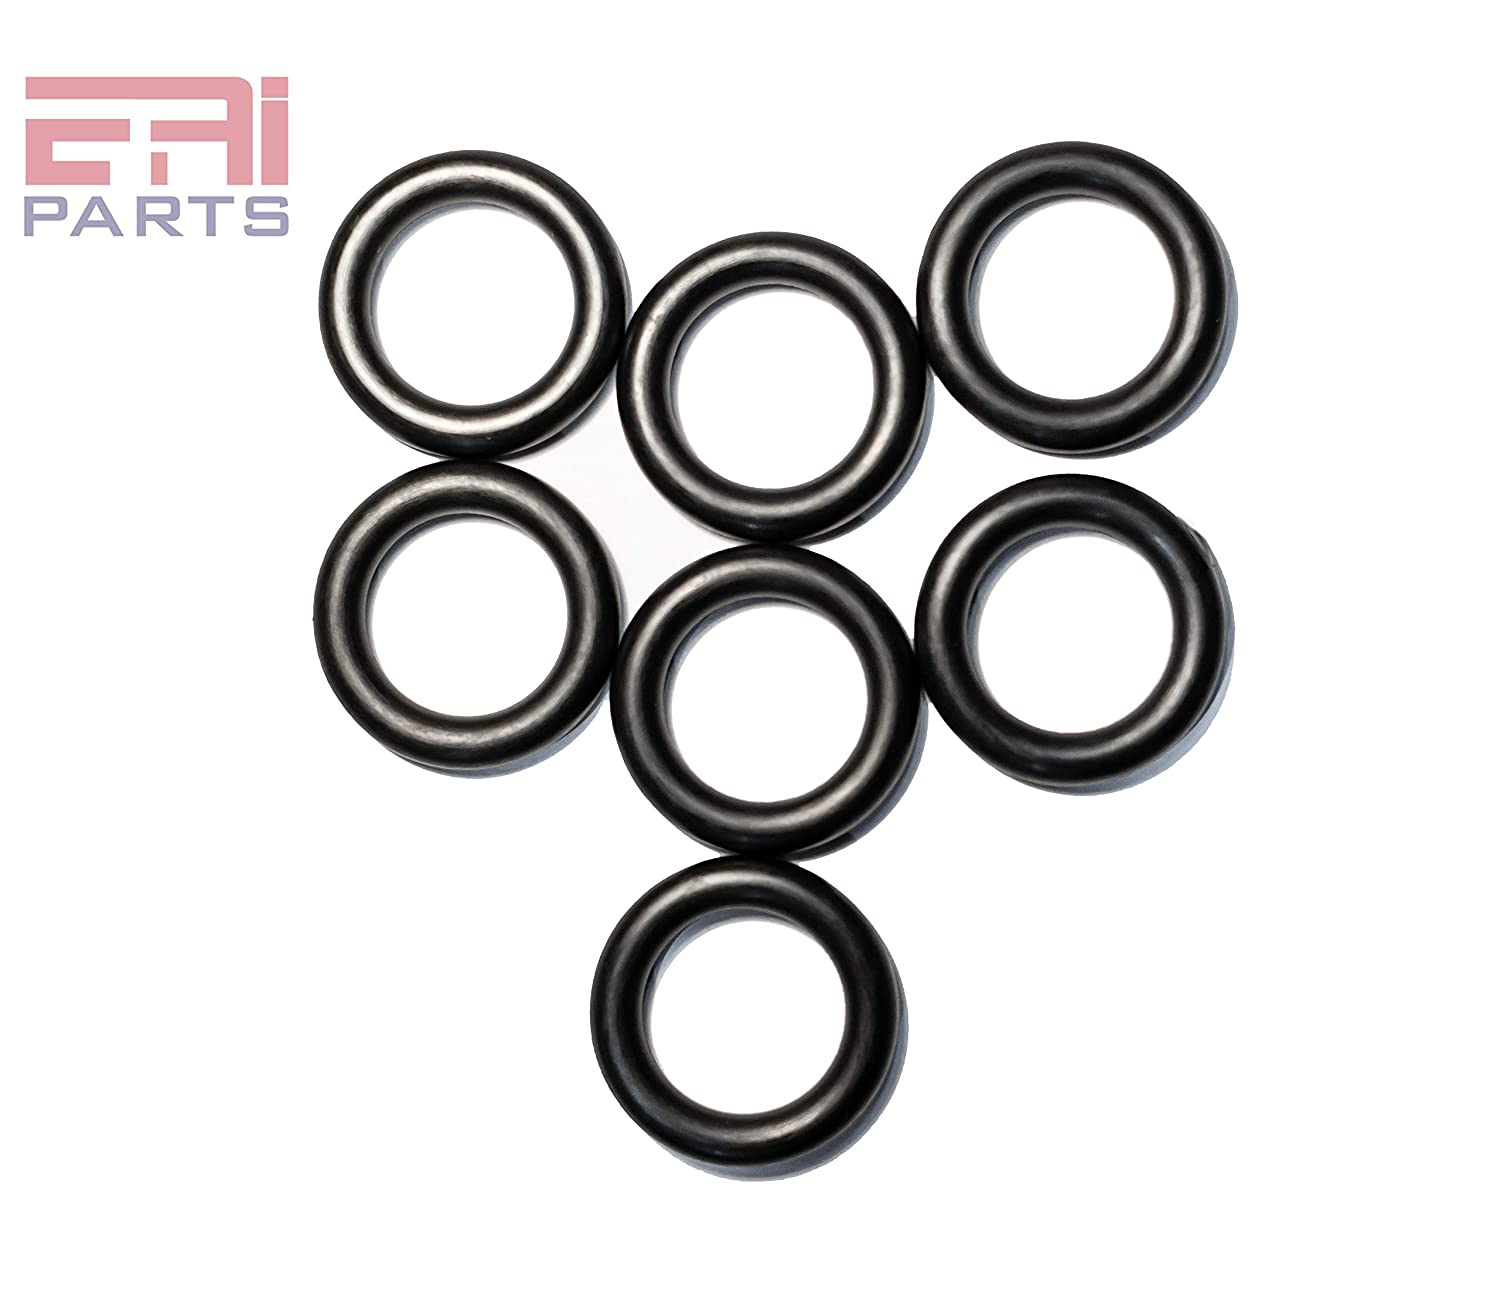 317 O-Ring Seal Buna-N; 70A Durometer Hardness- Pack of 10 15//16 ID X 1 5//16 OD X 3//16 CS